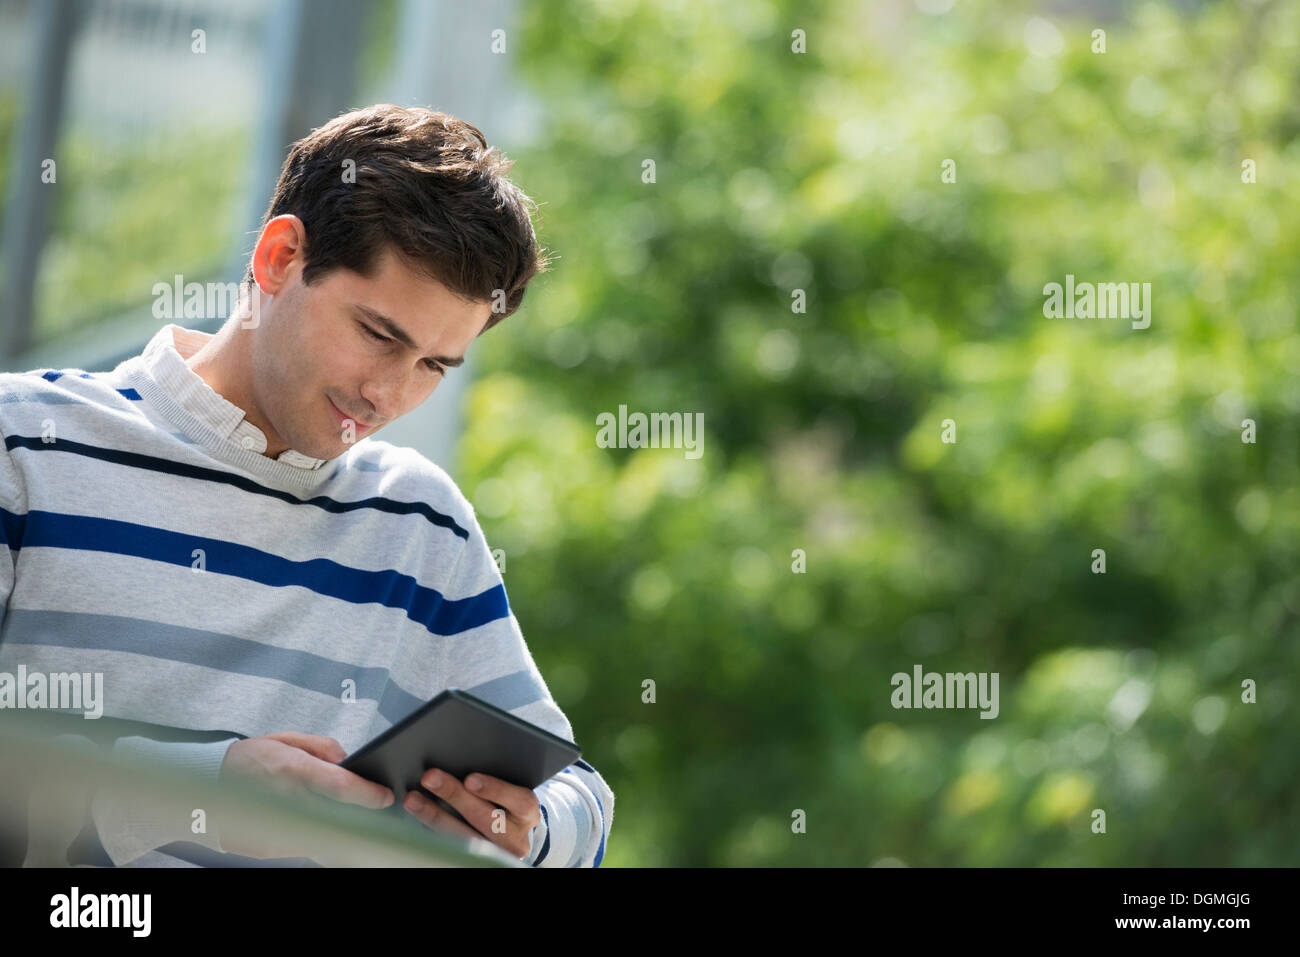 Summer. Business people. A man sitting using a digital tablet, keeping in touch. - Stock Image